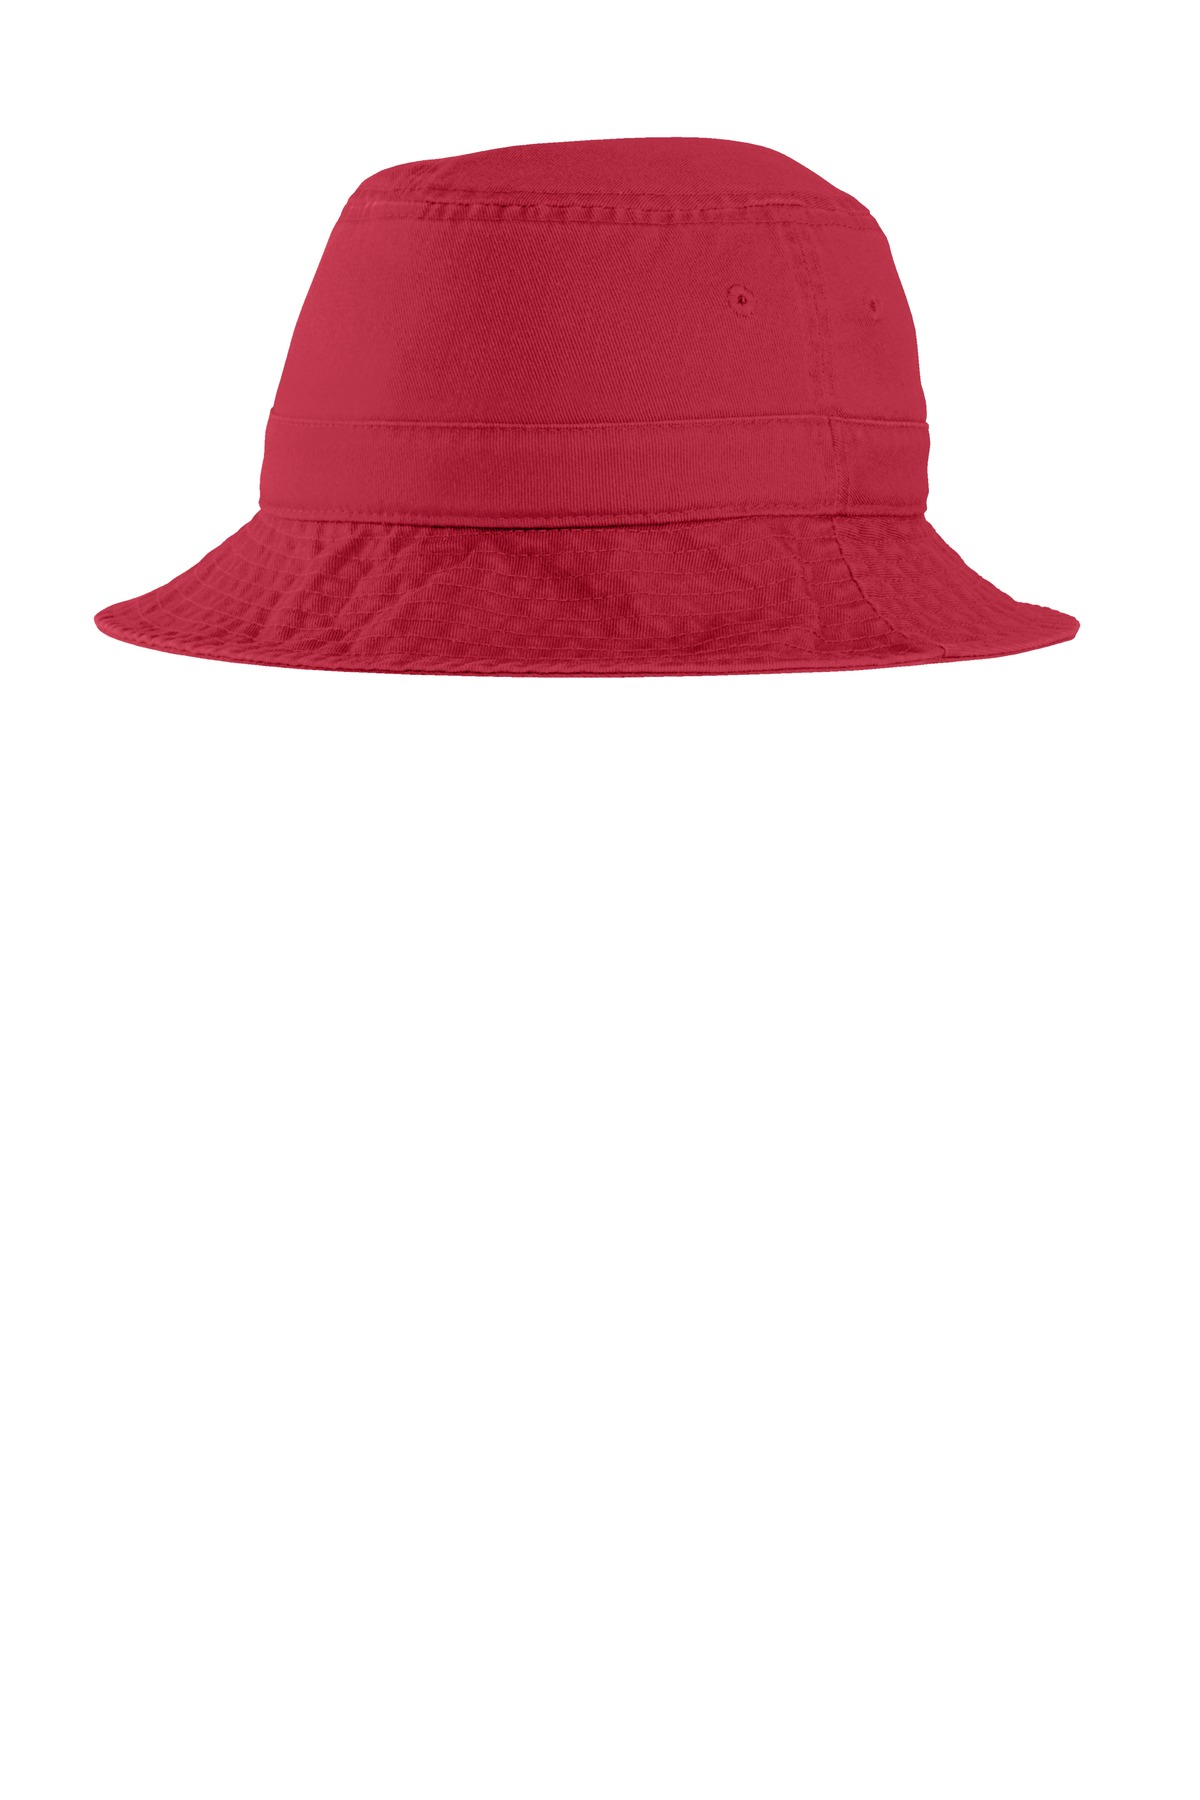 Port Authority ®  Bucket Hat. PWSH2 - Red